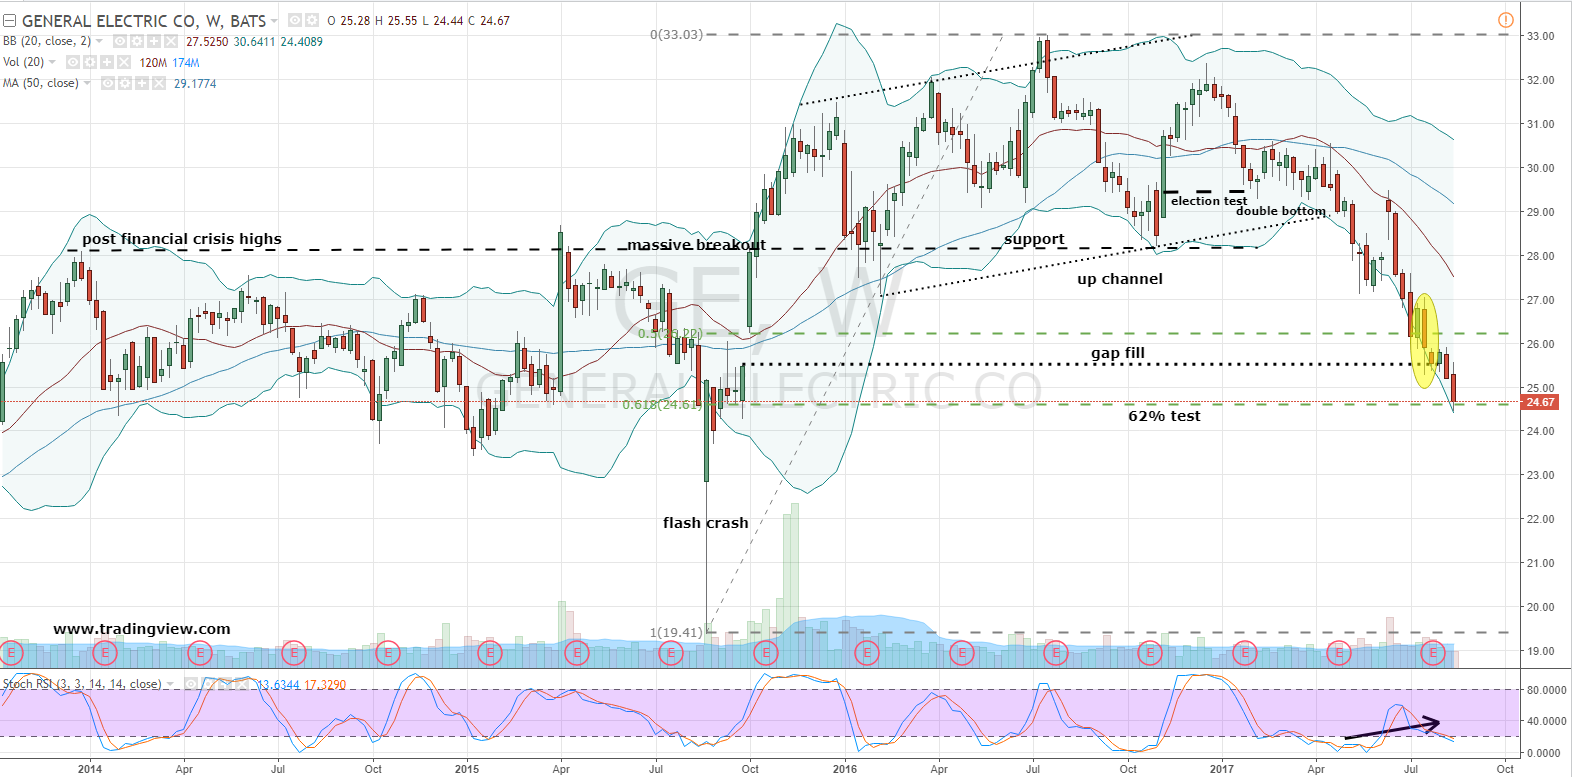 General Electric Corporation (GE) Stock Won't Bring Good Things to ...